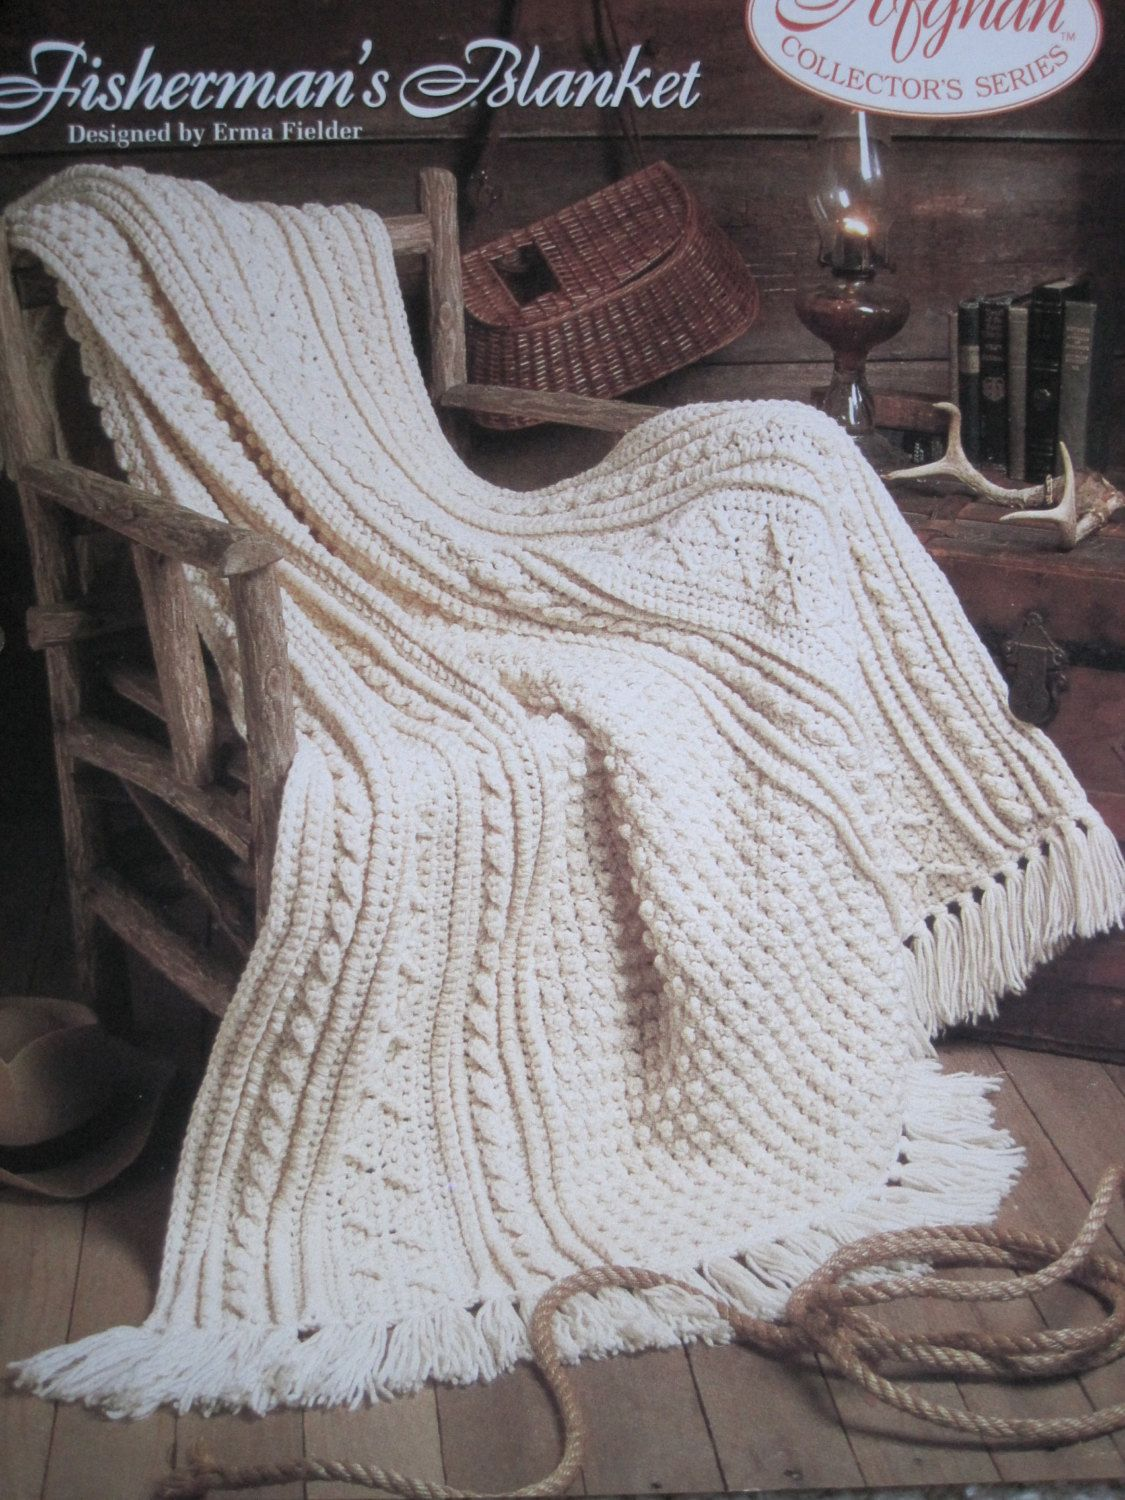 Pin de DC Thomas en Crocheted blankets | Pinterest